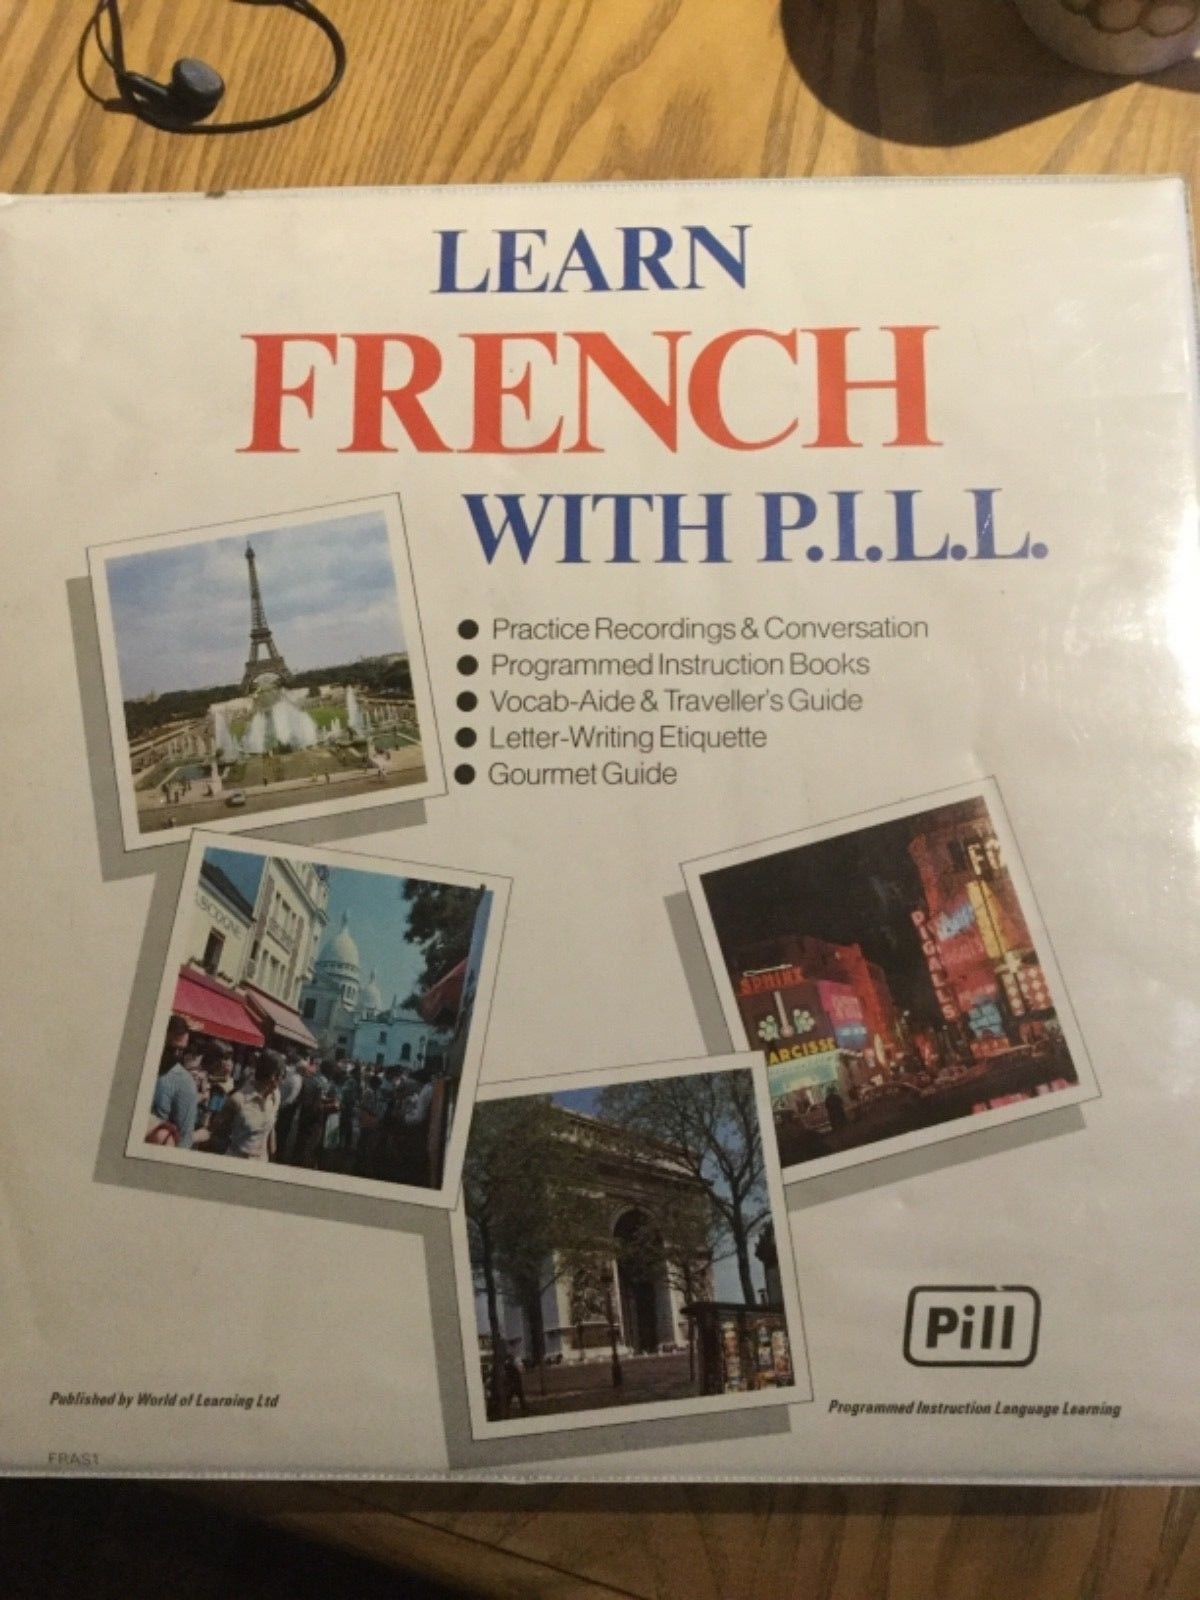 PILL Learn French 1.jpg